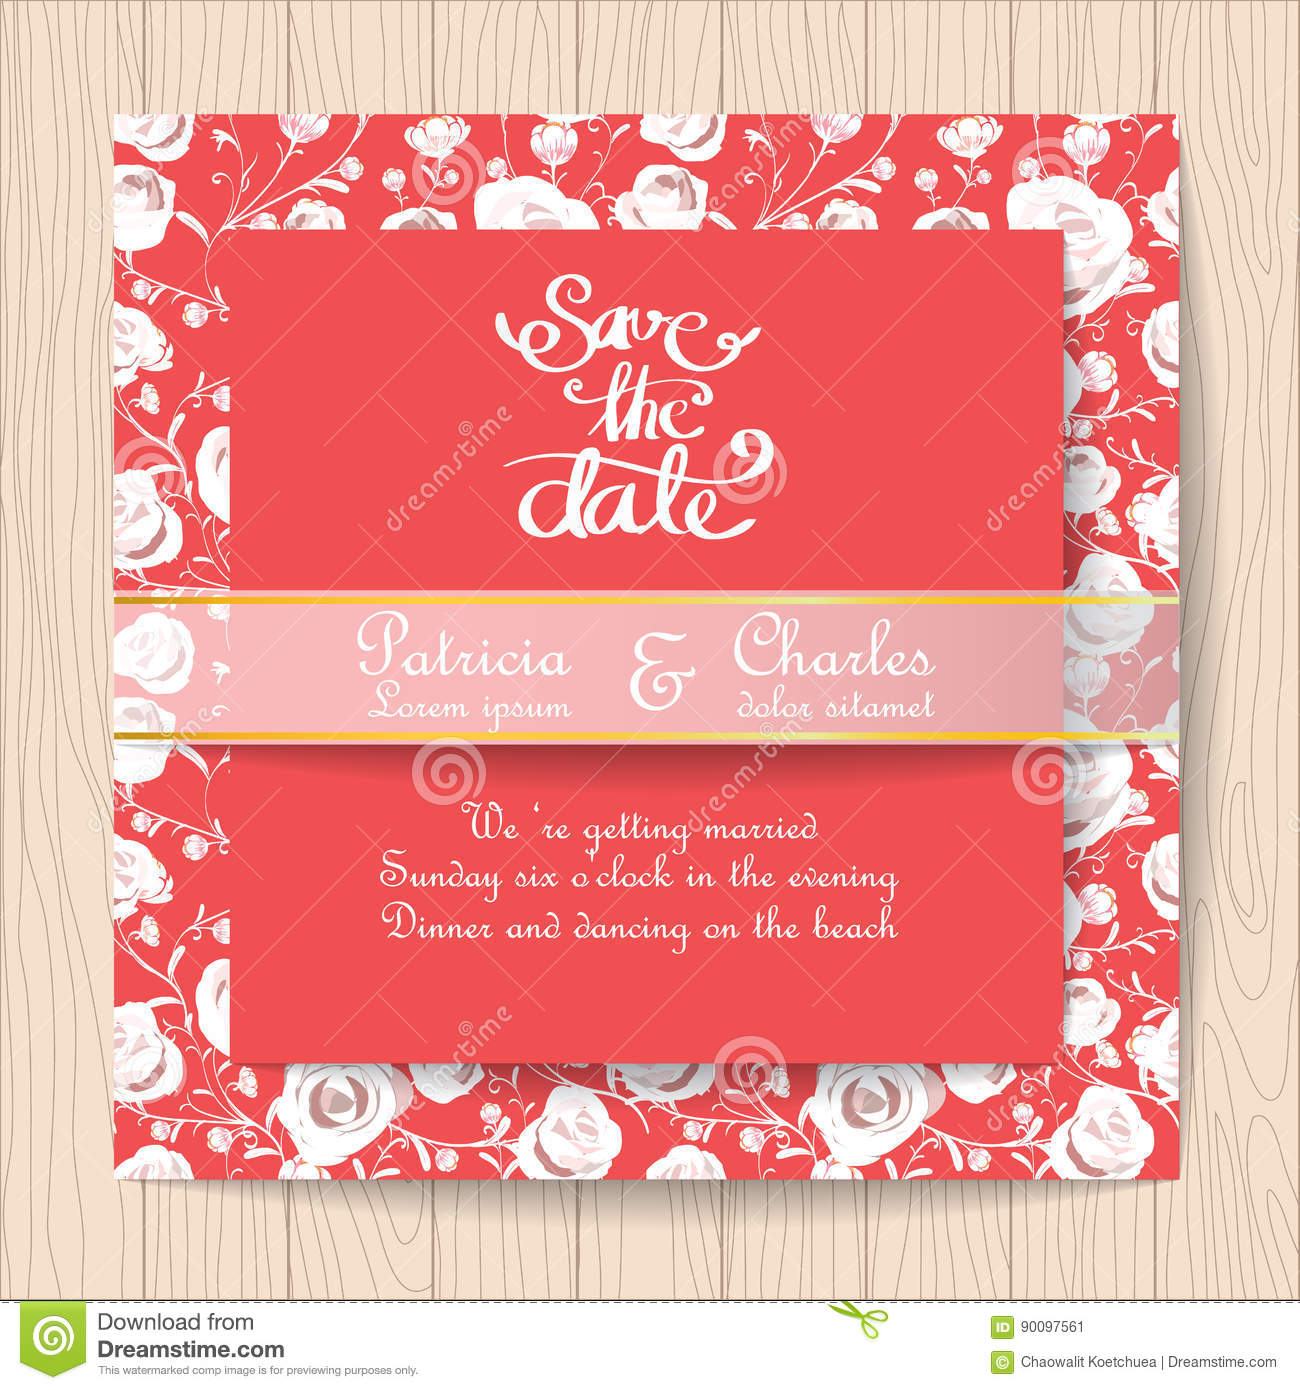 Wedding Invitation Red Card With White Rose Flower Templates Stock ...